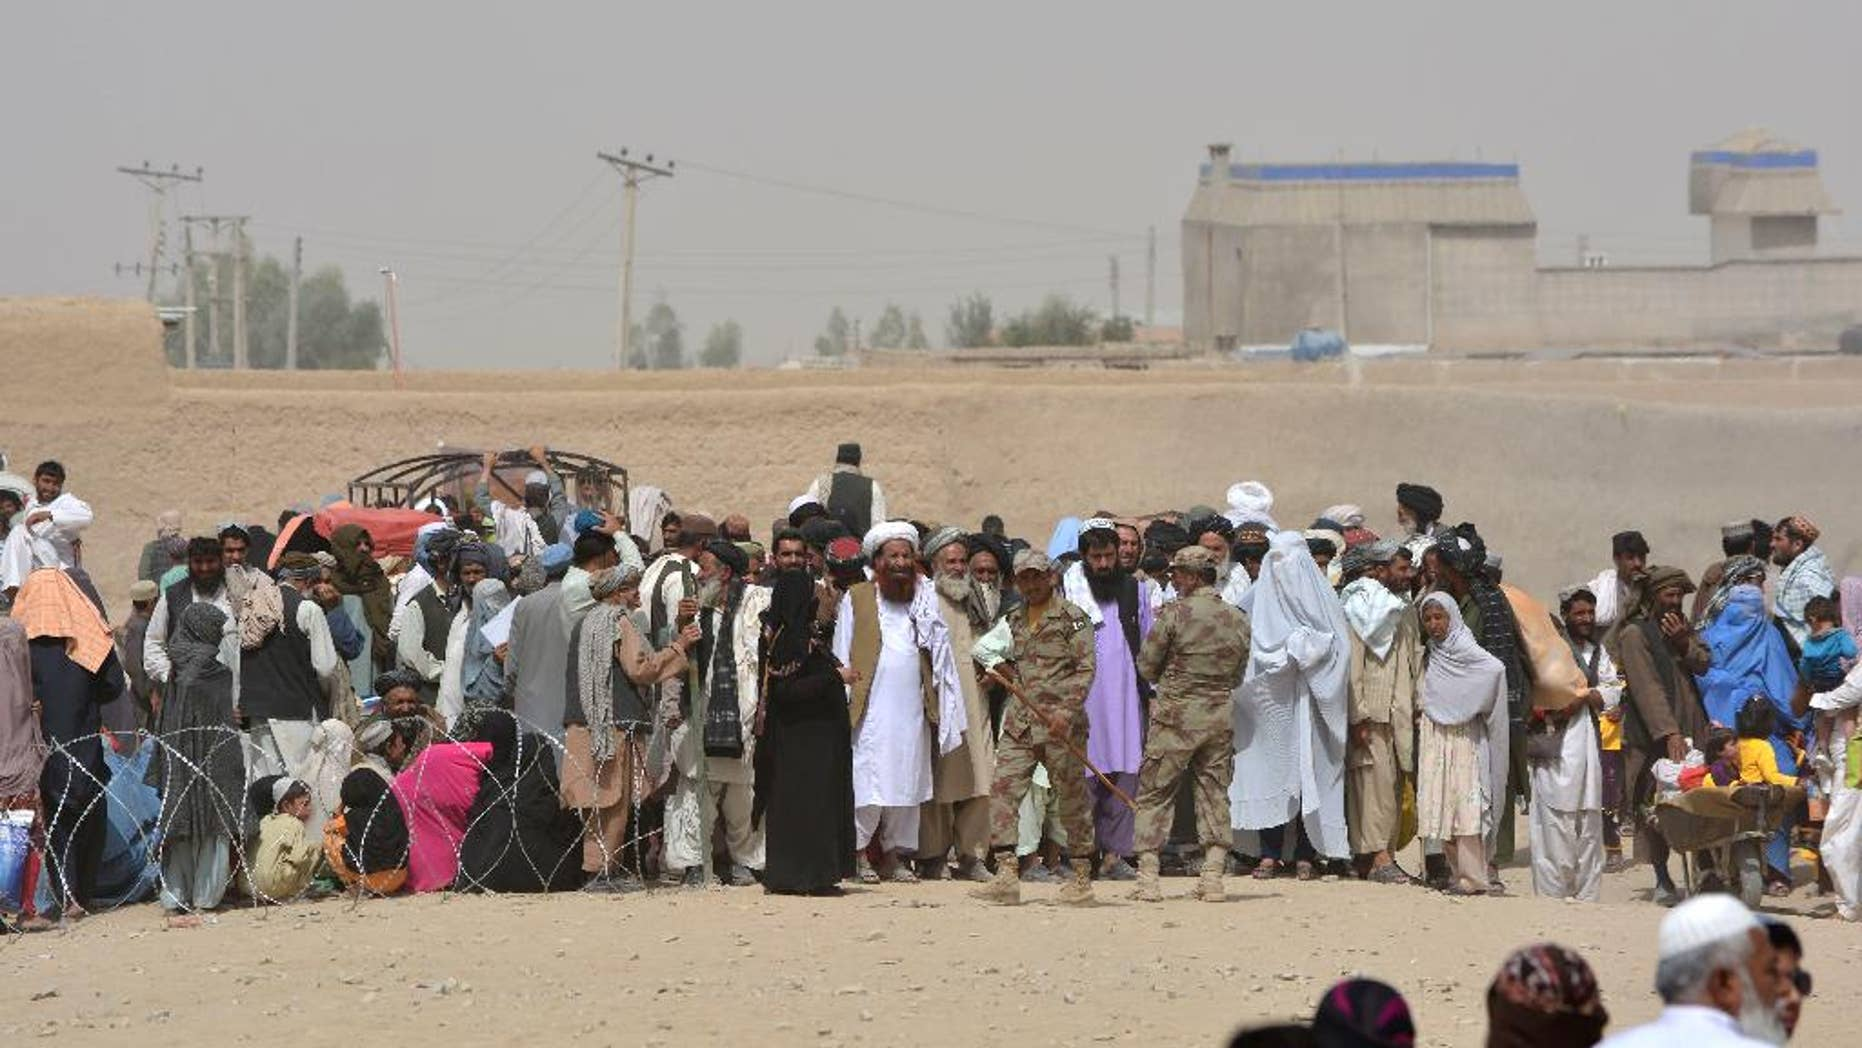 People en route to Afghanistan wait at the Pakistani border post, Chaman, Wednesday, Aug. 31, 2016. Border crossing in Chaman in southwest Pakistan is closed for 15th consecutive day after Afghan protesters burned a Pakistani flag on the other side of the border. Border will reopen on Thursday morning after negotiations between Pak and Afghan officials, official said. (AP Photo/Matiullah Achakzai)